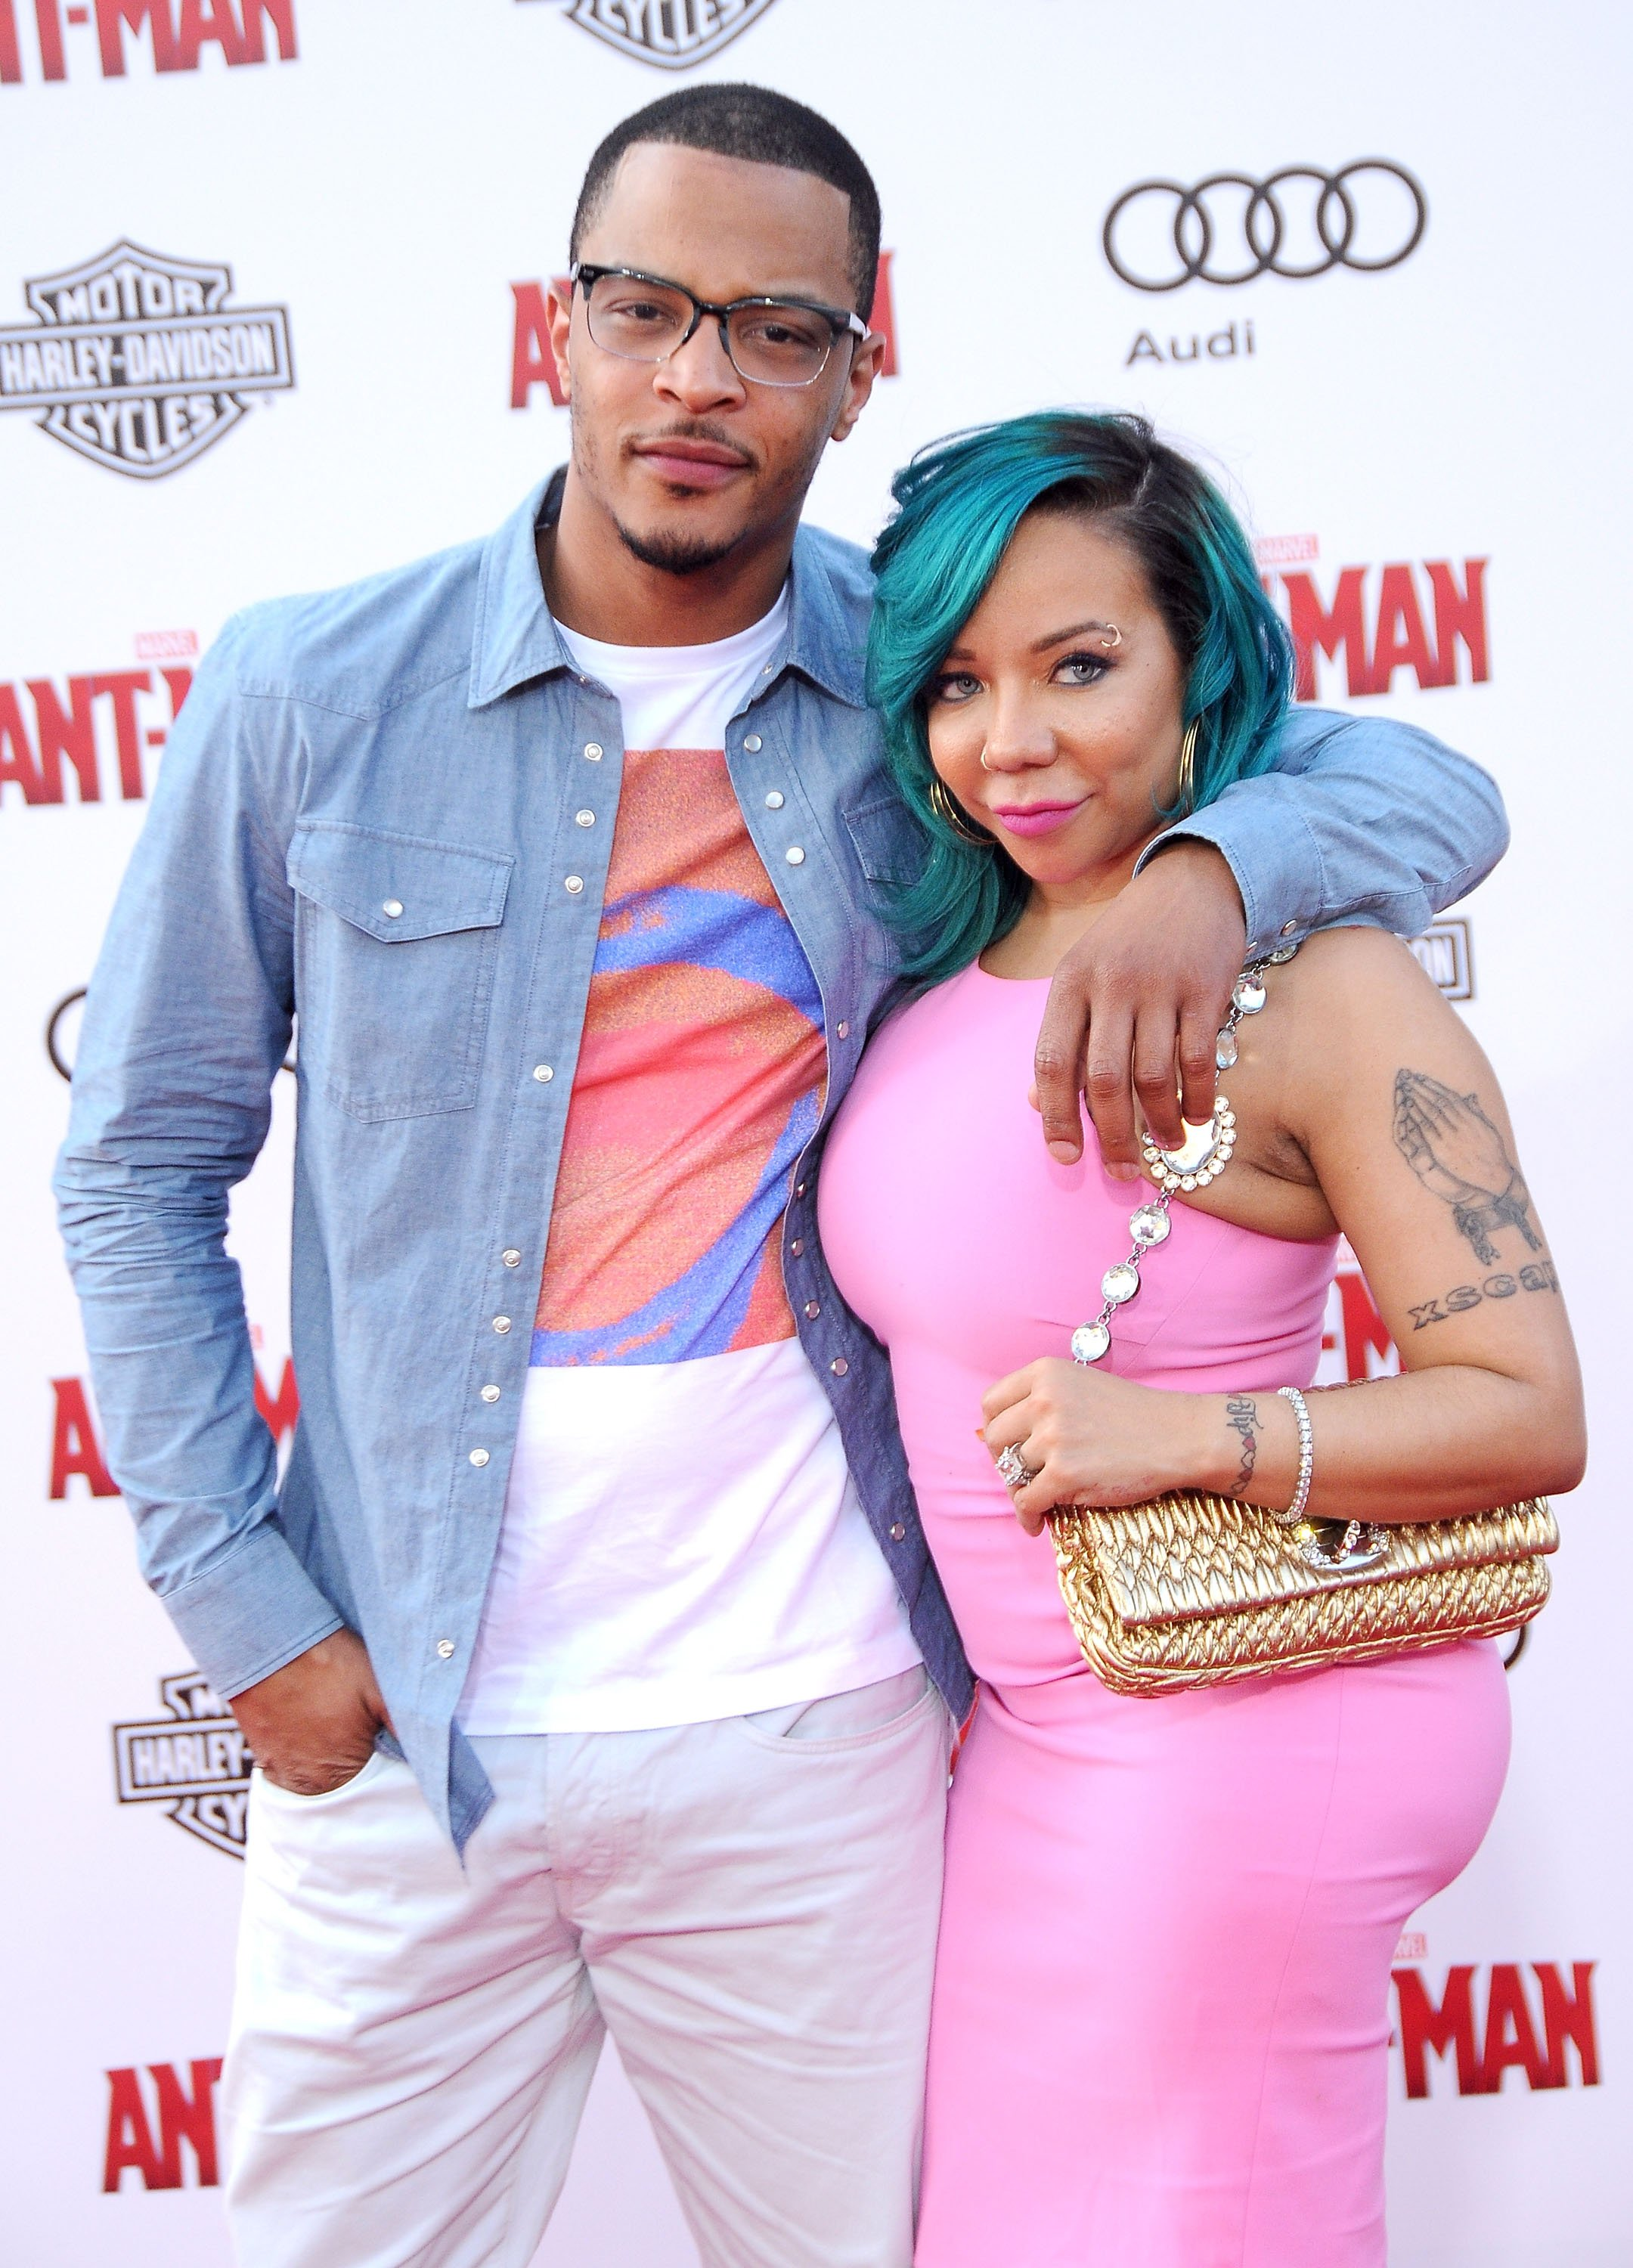 T.I. & Tiny at the Premiere of 'Ant-Man' at Dolby Theatre on June 29, 2015 in Hollywood, California. | Photo: Getty Images